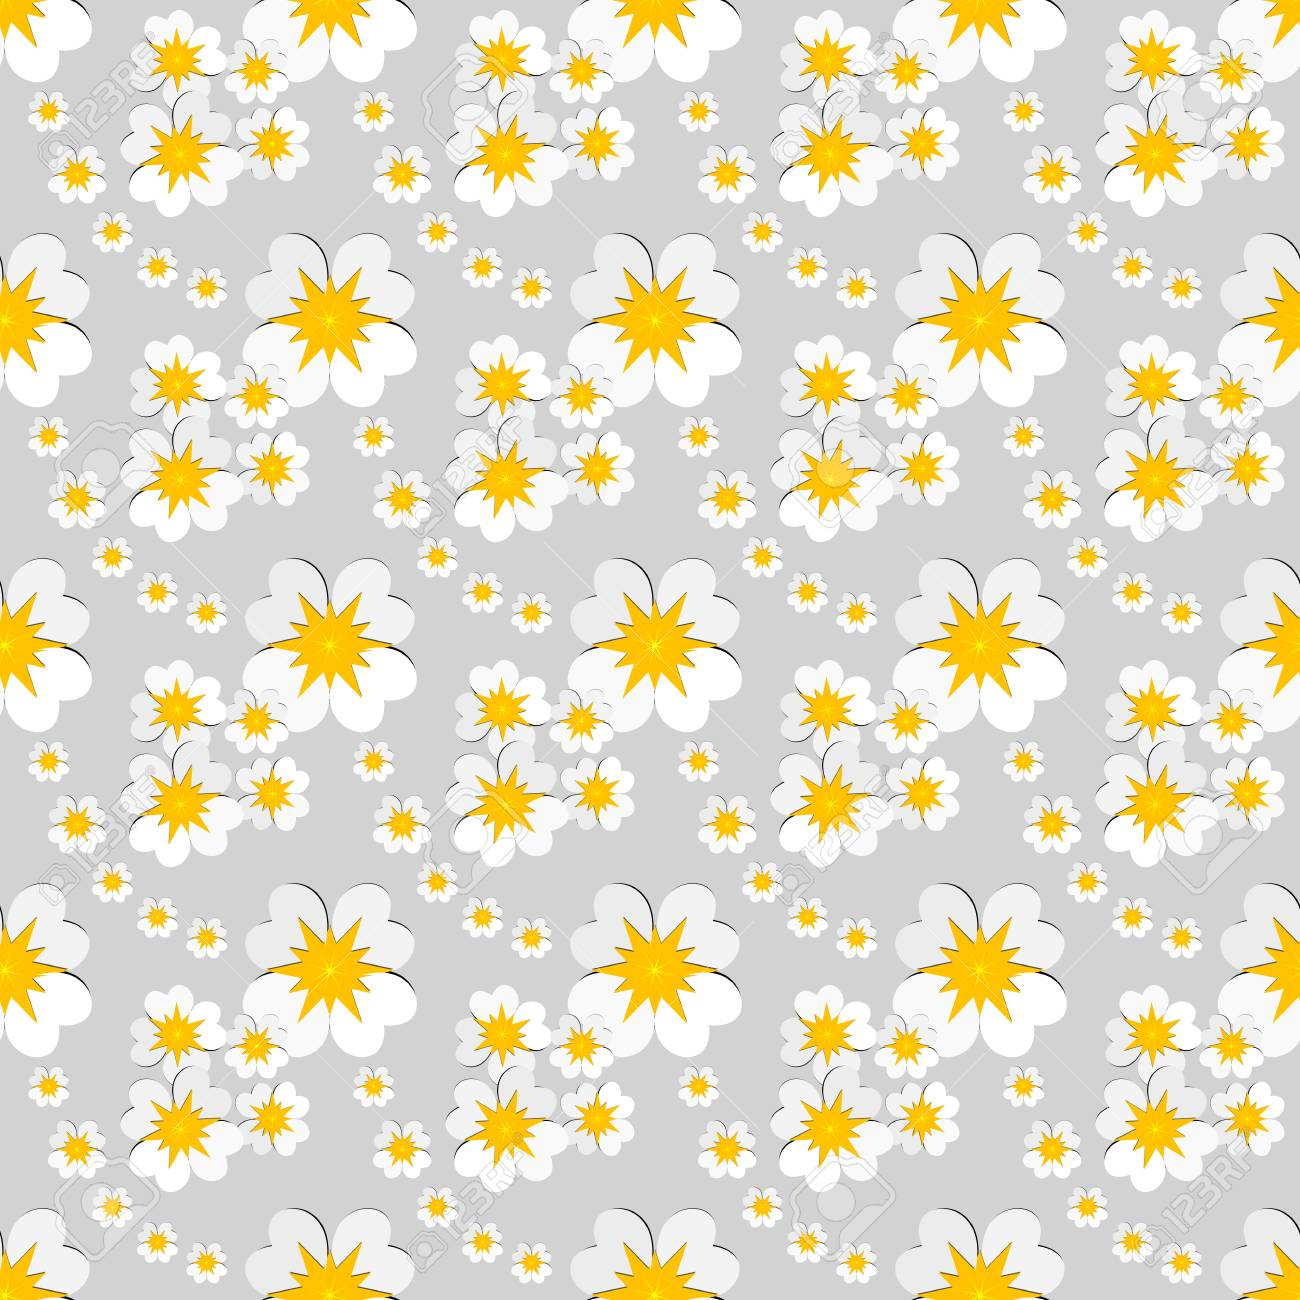 Seamless Floral Pattern Of White Flowers With Yellow Pollen On